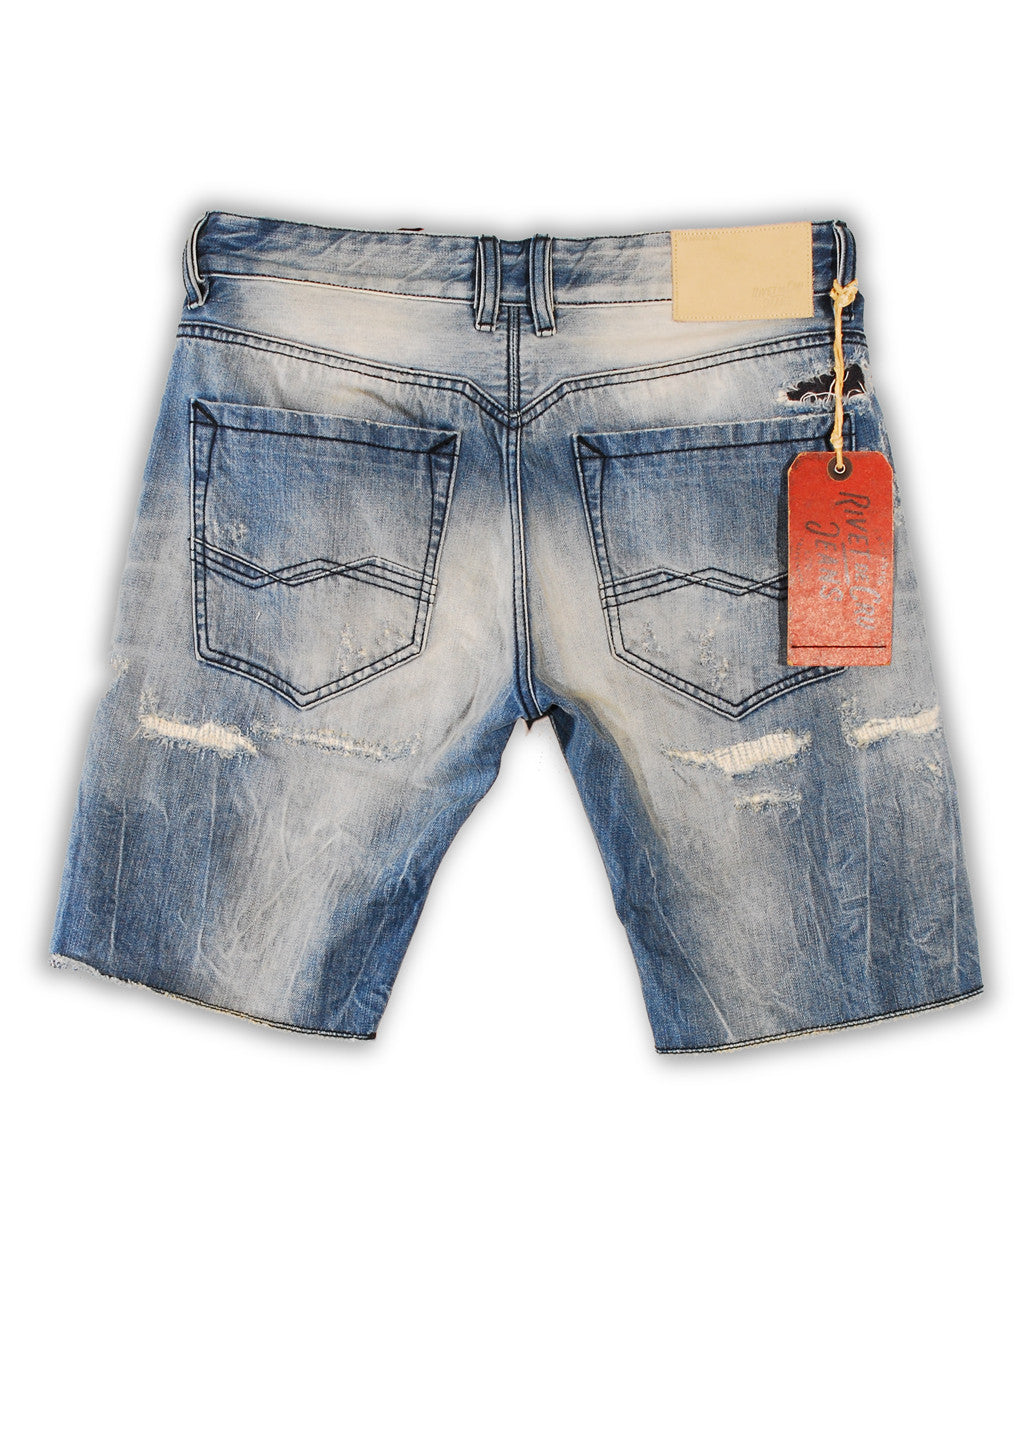 1TS-064 Sky Dream Blue Shorts - Rivet De Cru Jeans - Premium Denim